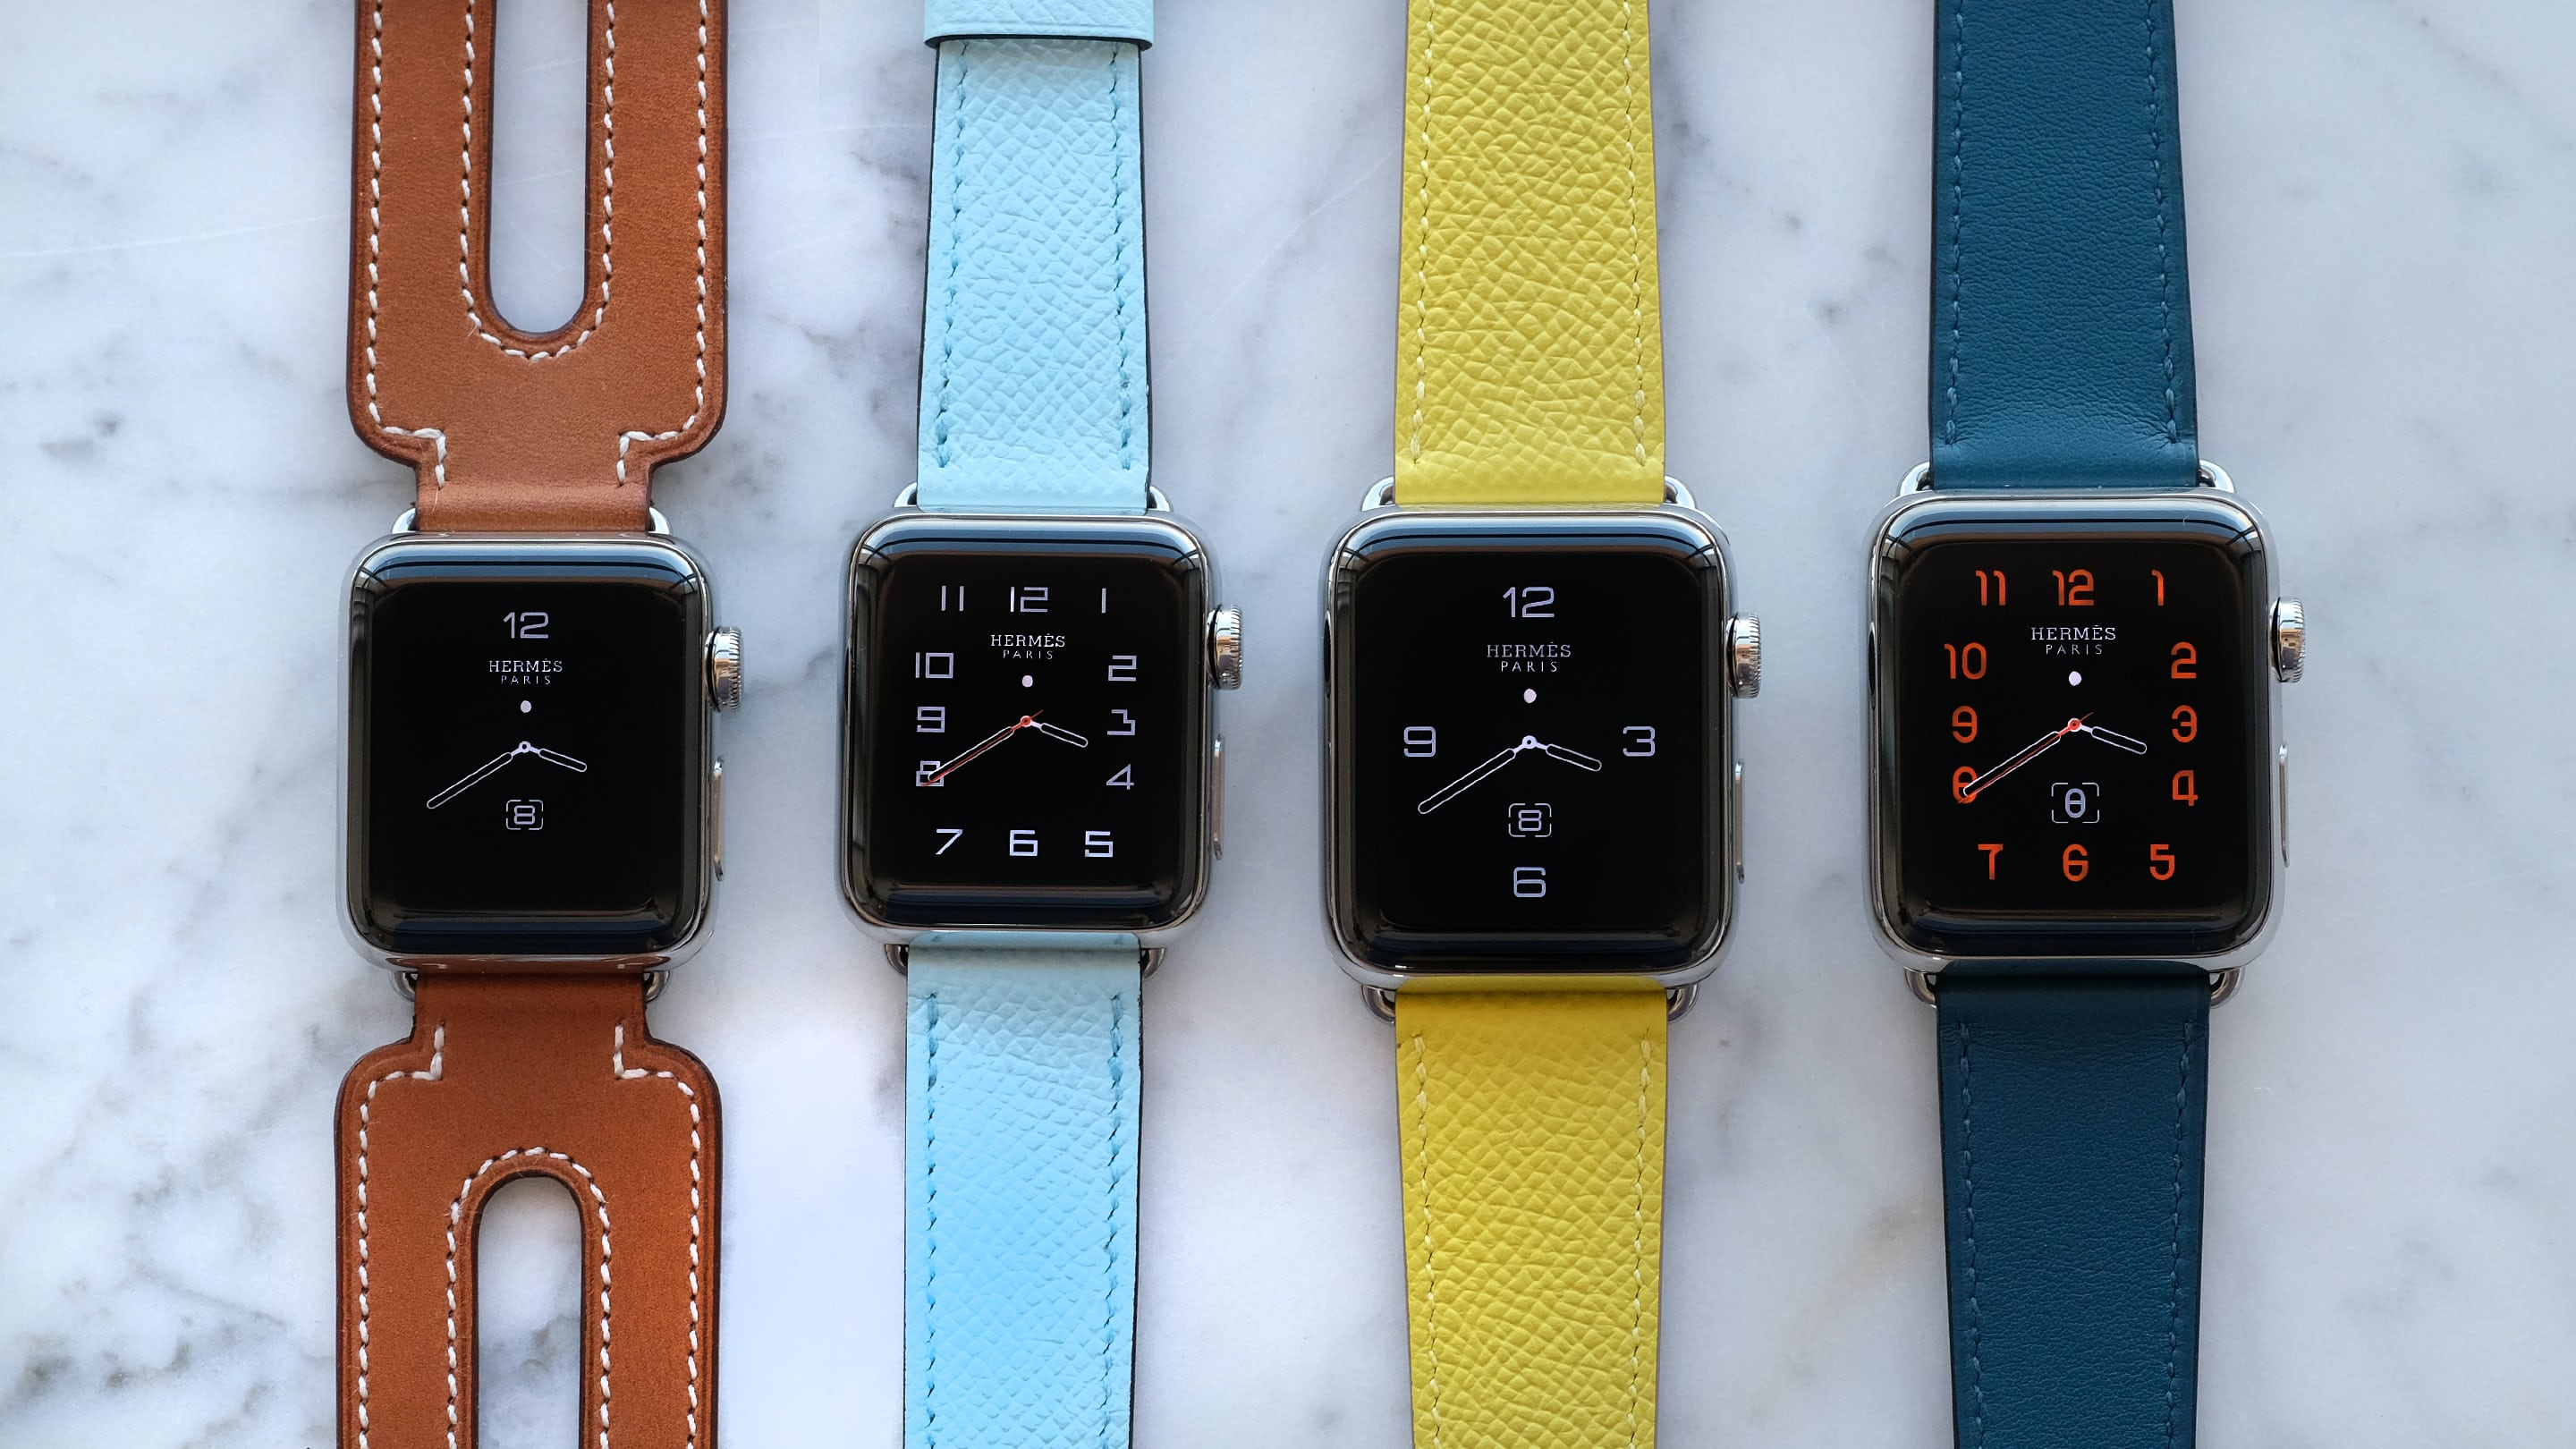 94abb41d03f Wearables  Apple And Hermès Continue Their Partnership With Four New Watch  Straps - HODINKEE